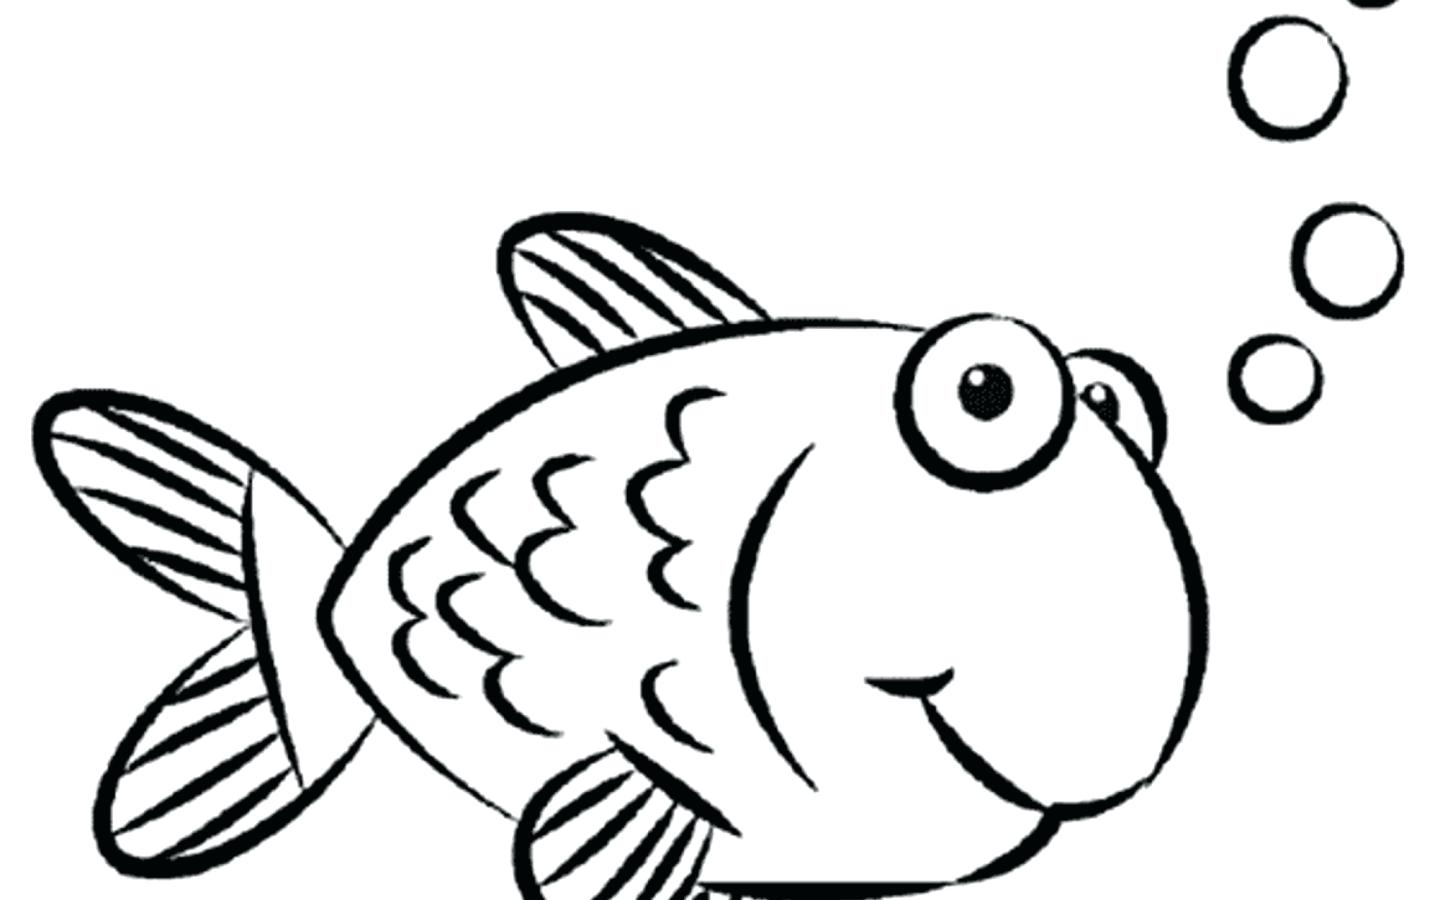 1440x900 Coloring Bass Coloring Pages Fish Jumping Out Of Water. Bass